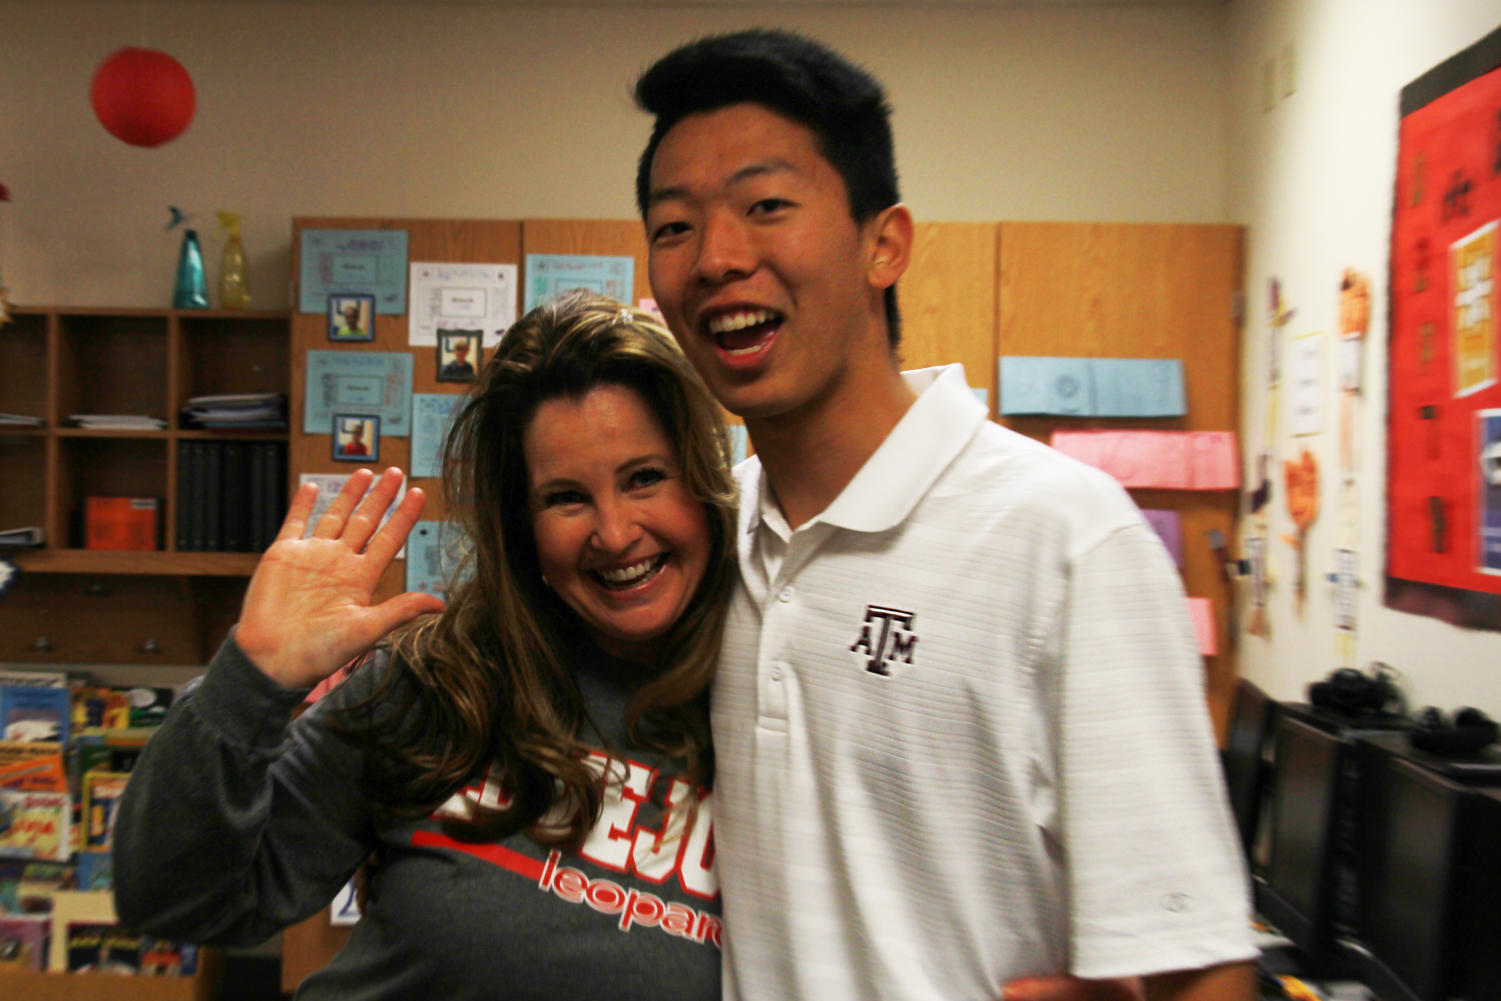 Senior+Christian+Kwon+and+Shelley+Cano+%0Aembrace+in+the+elementary%27s+GT+classroom.+